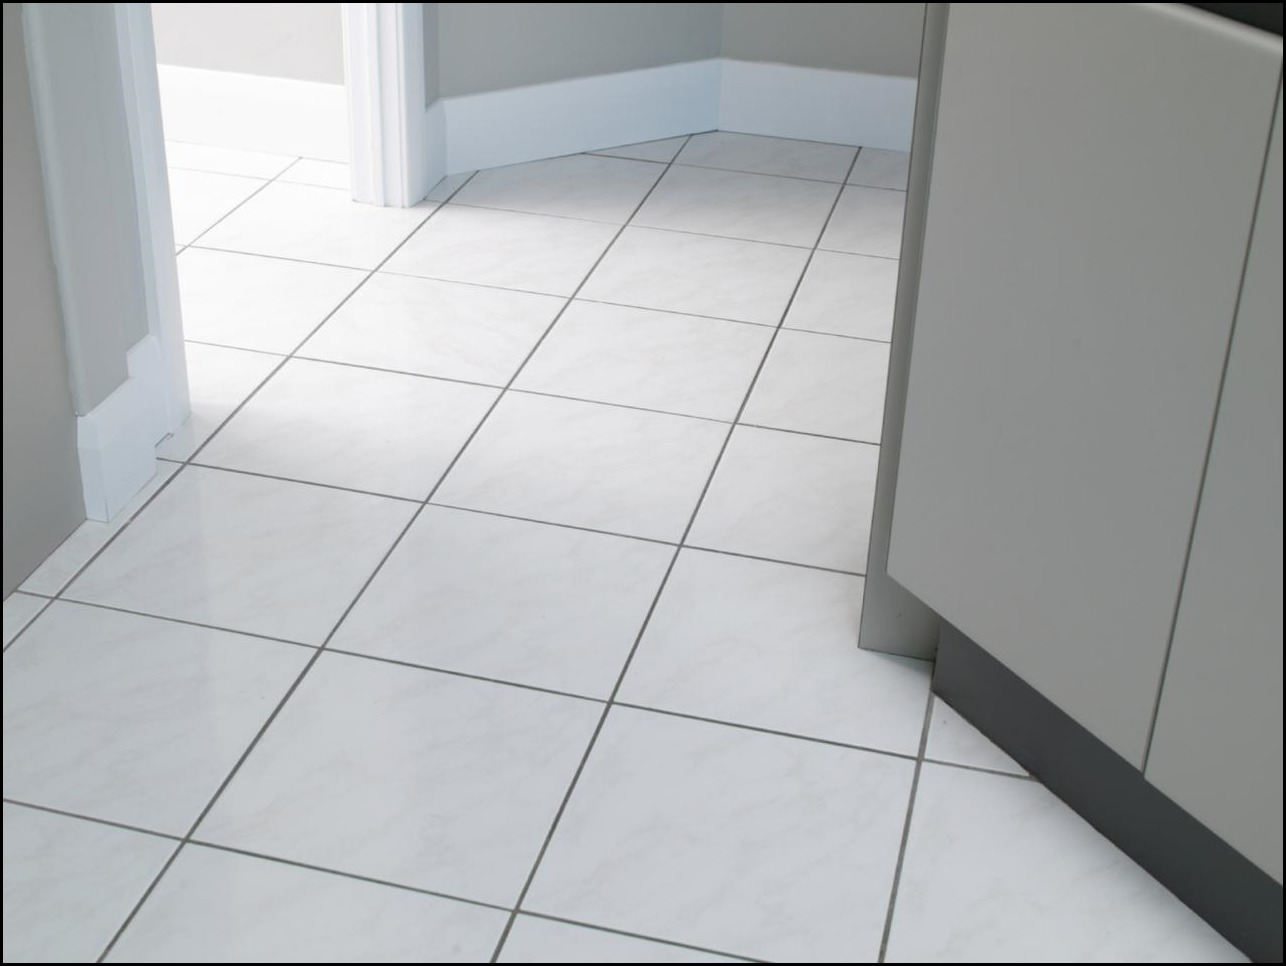 Low cost Discounted Wall & Flooring Tiles |